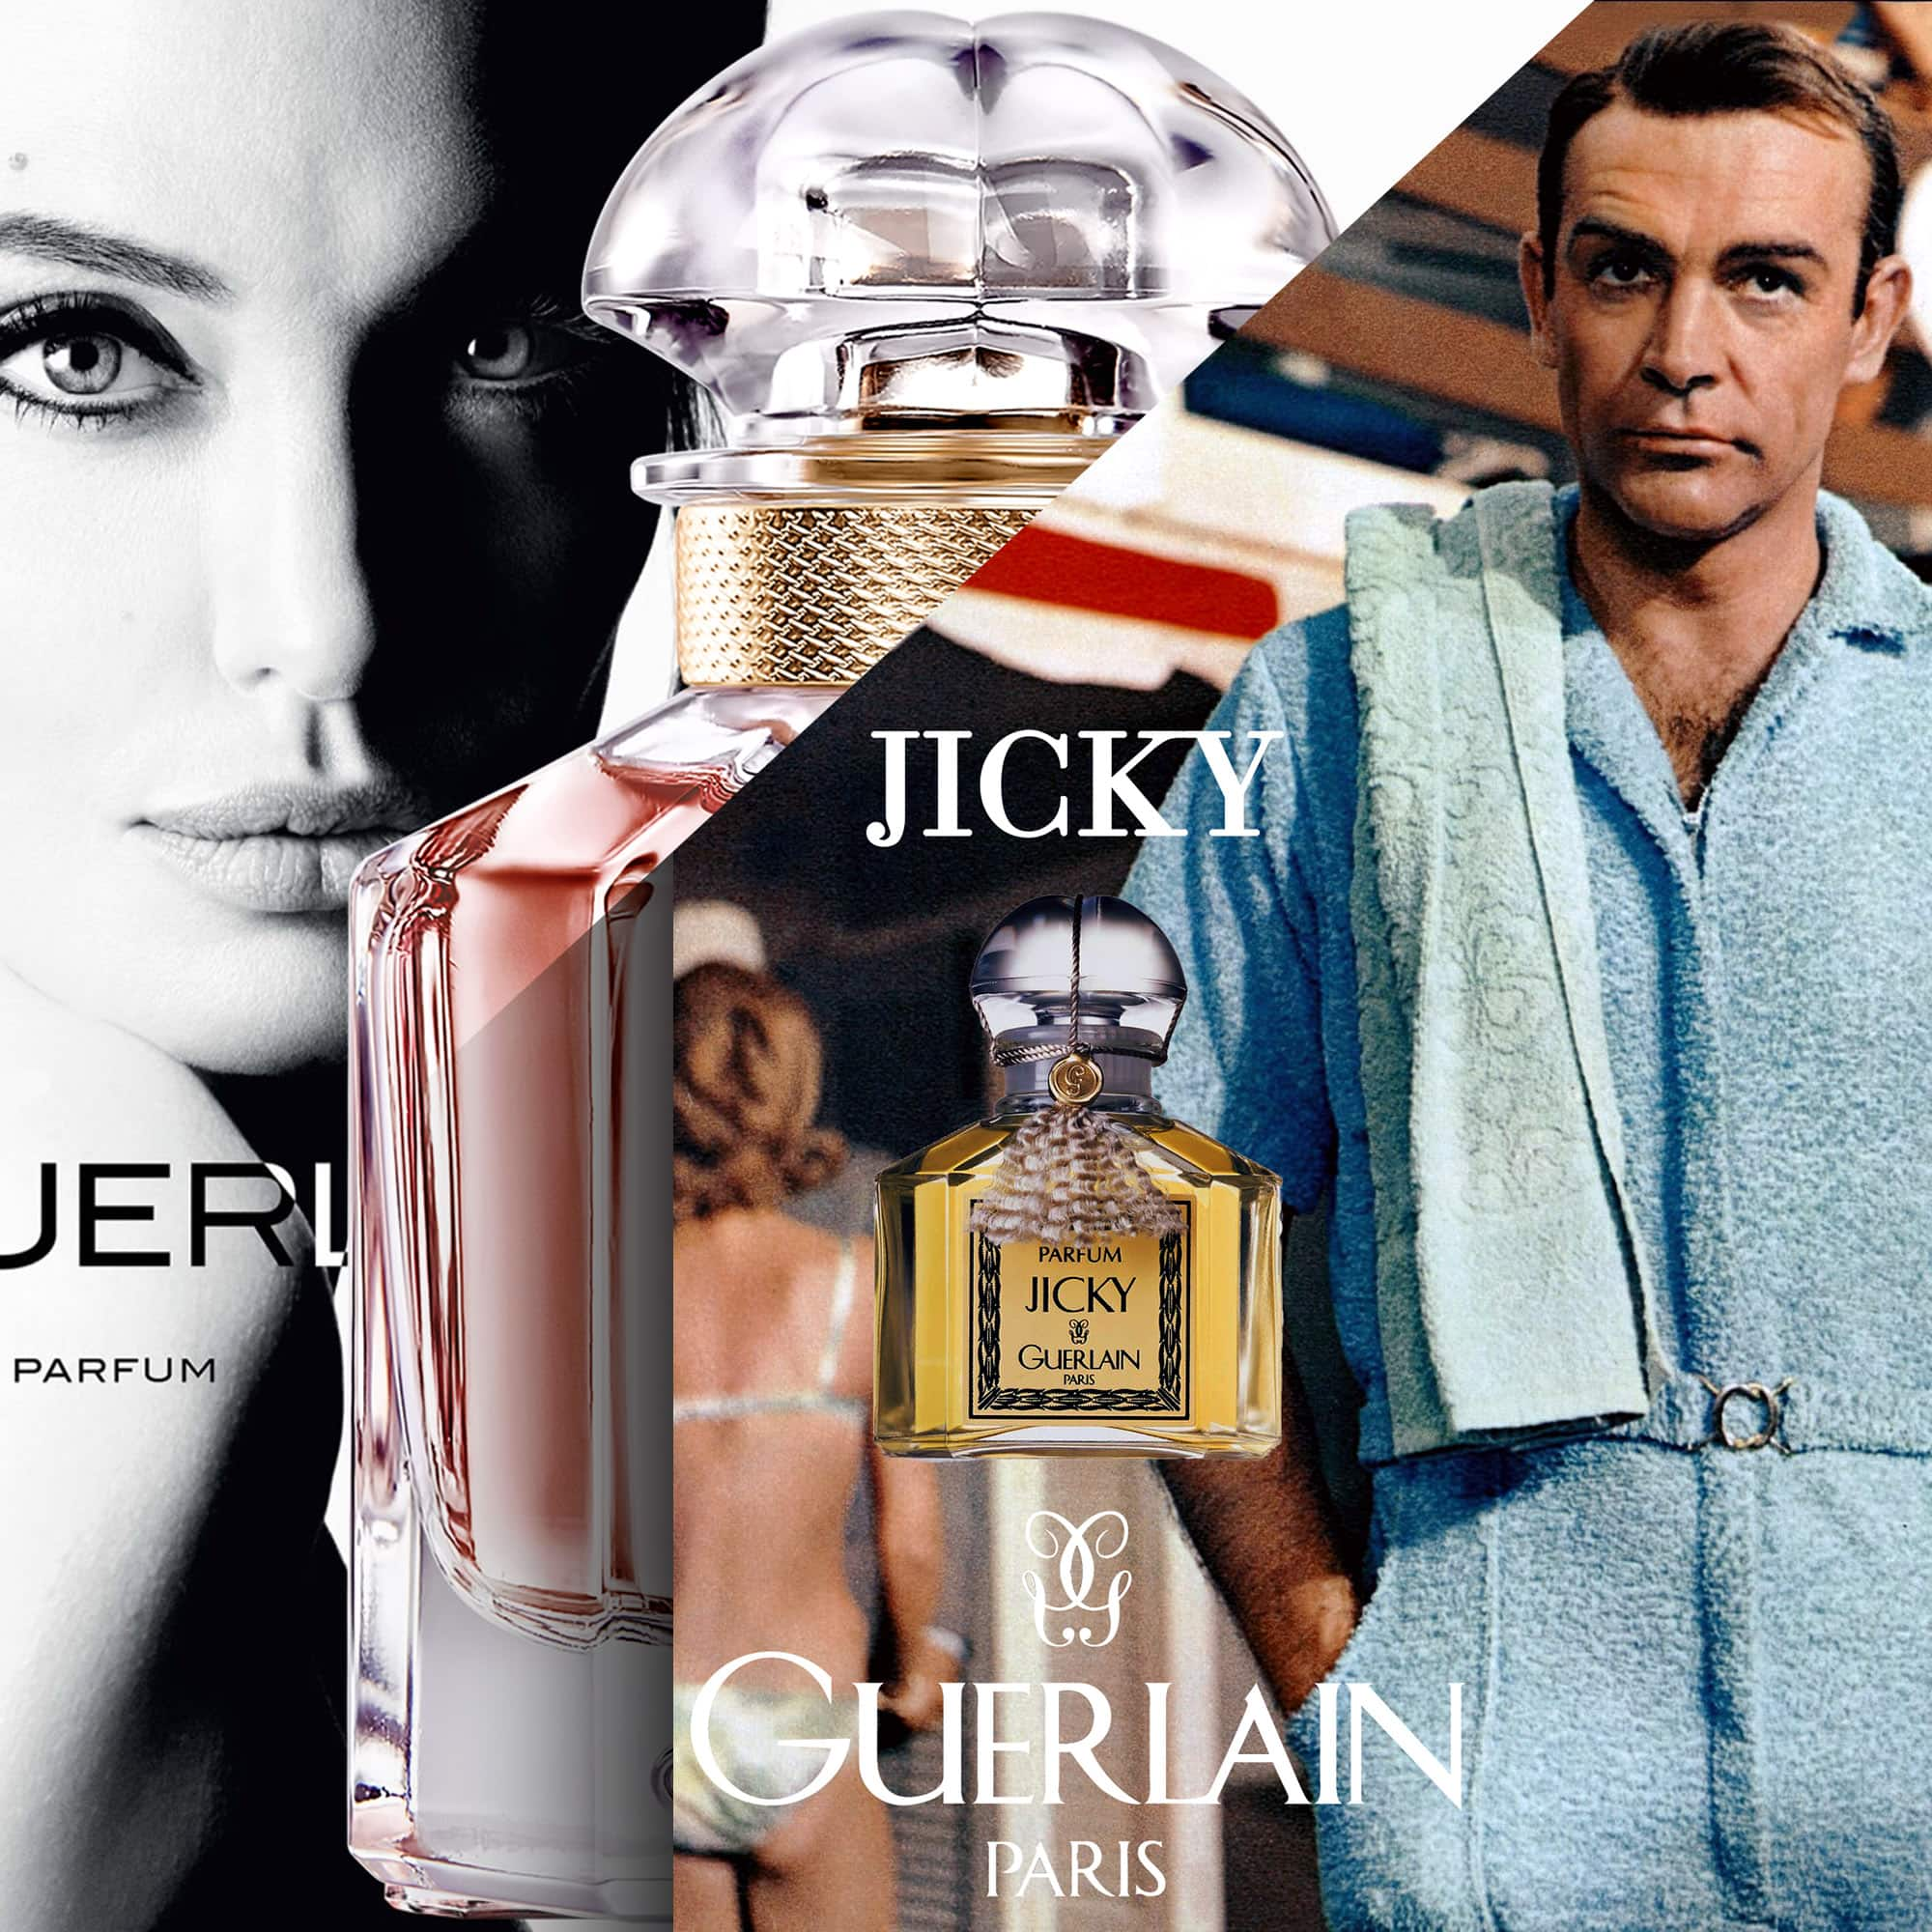 Guerlain advertising - Sean Connery - Angelina Jolie -Tresors INPI by RUNWAY MAGAZINE